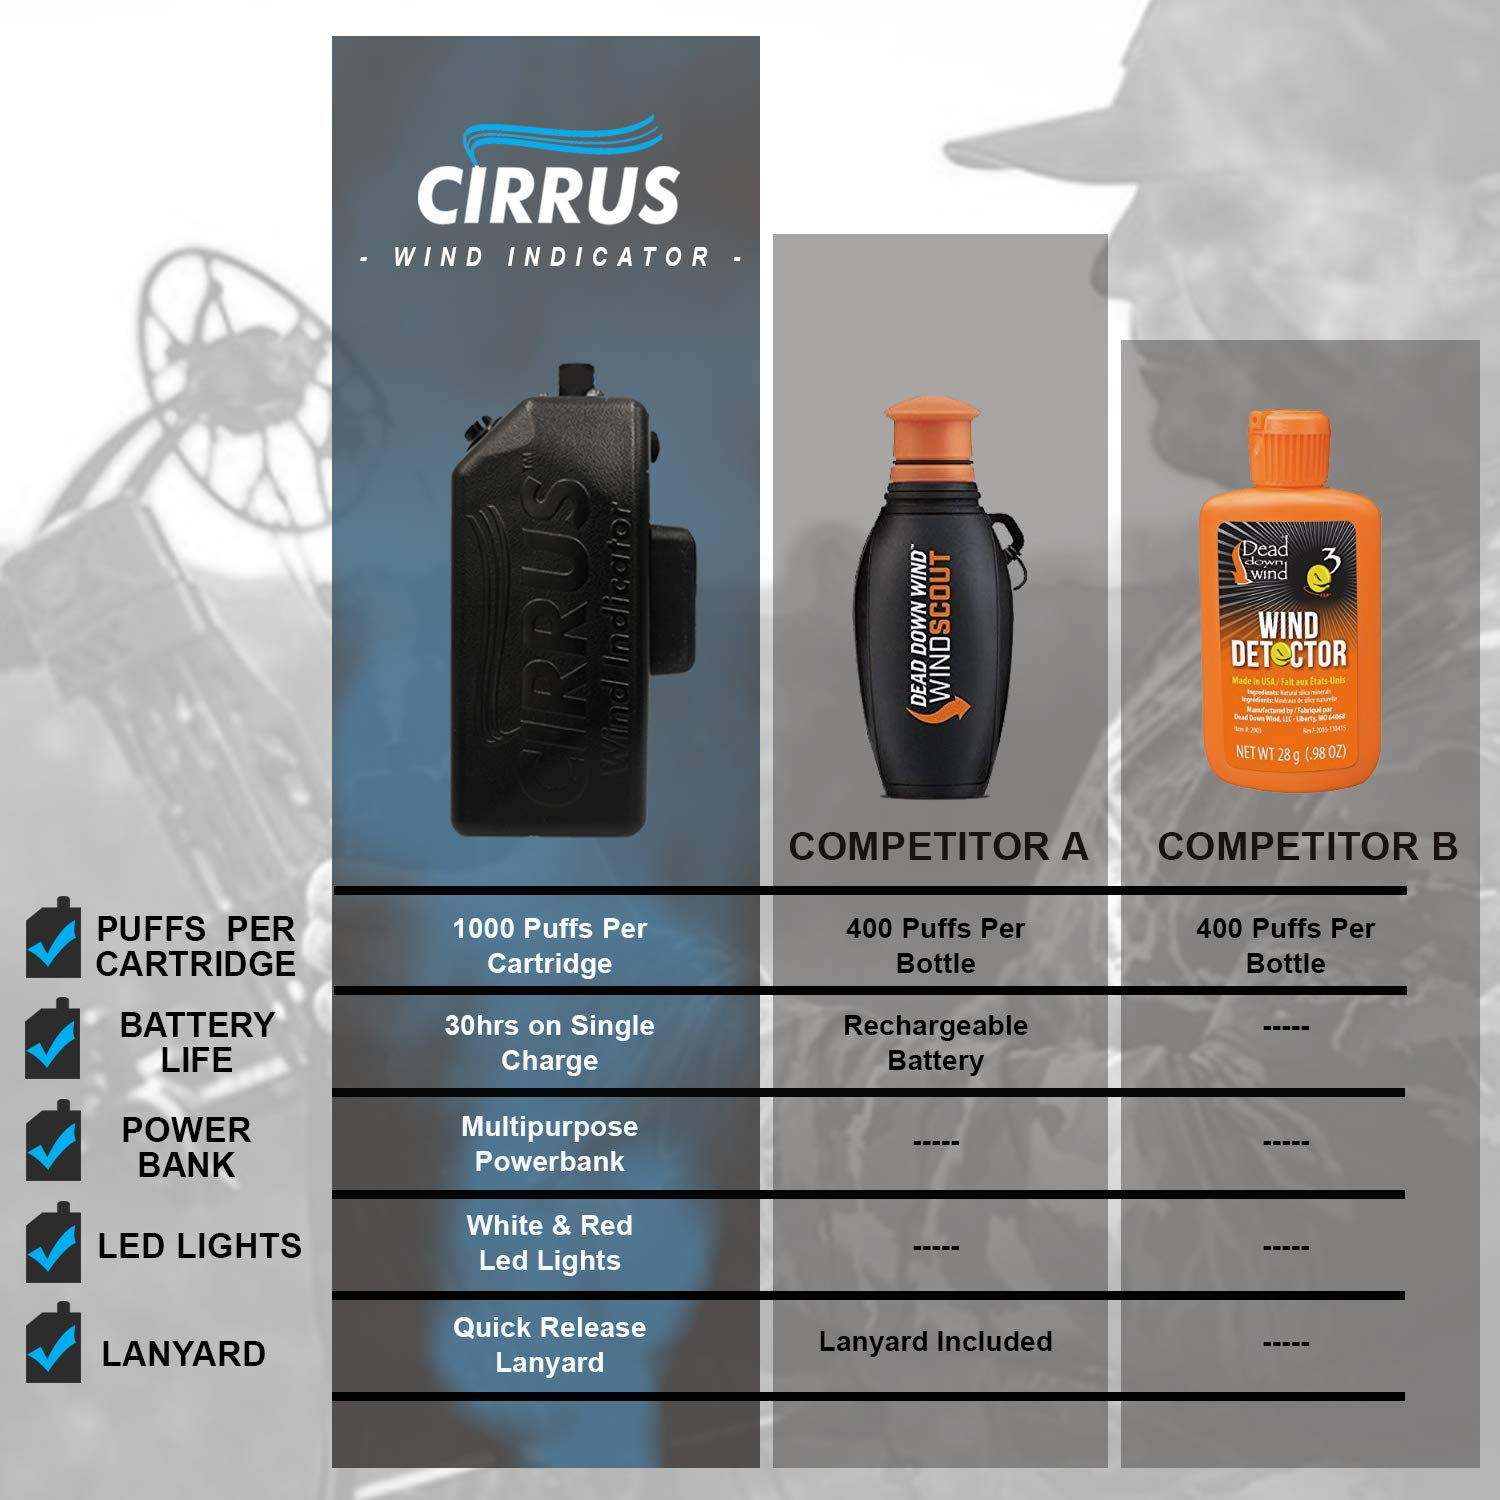 Cirrus Wind Indicator for Hunting - The Perfect Wind Checker Alternative to Messy Powder by Cirrus (Image #2)